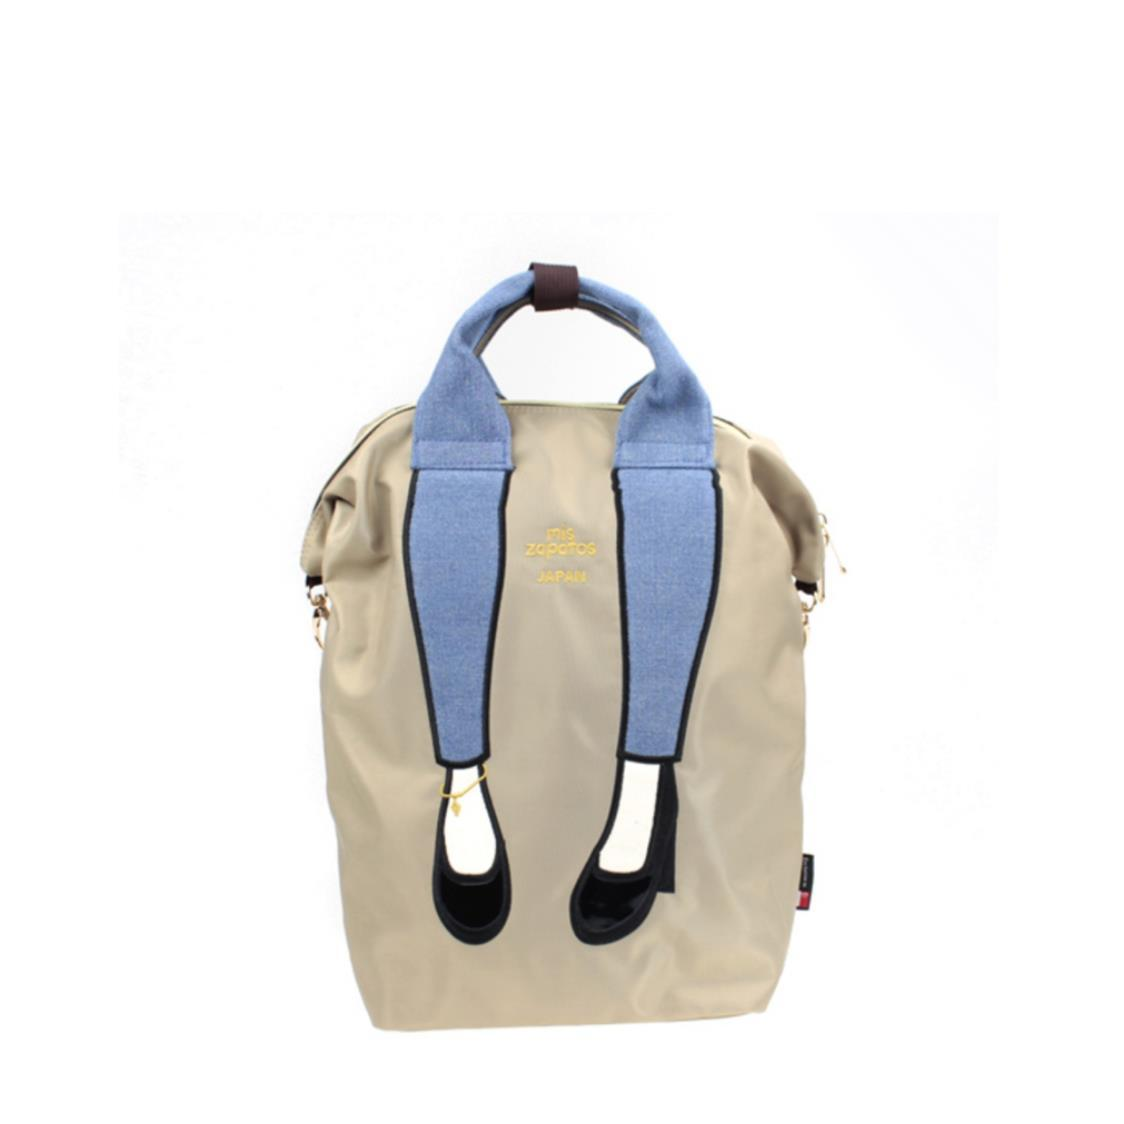 3-Way Jeans with High Heels Backpack Exclusive In Singapore Beige